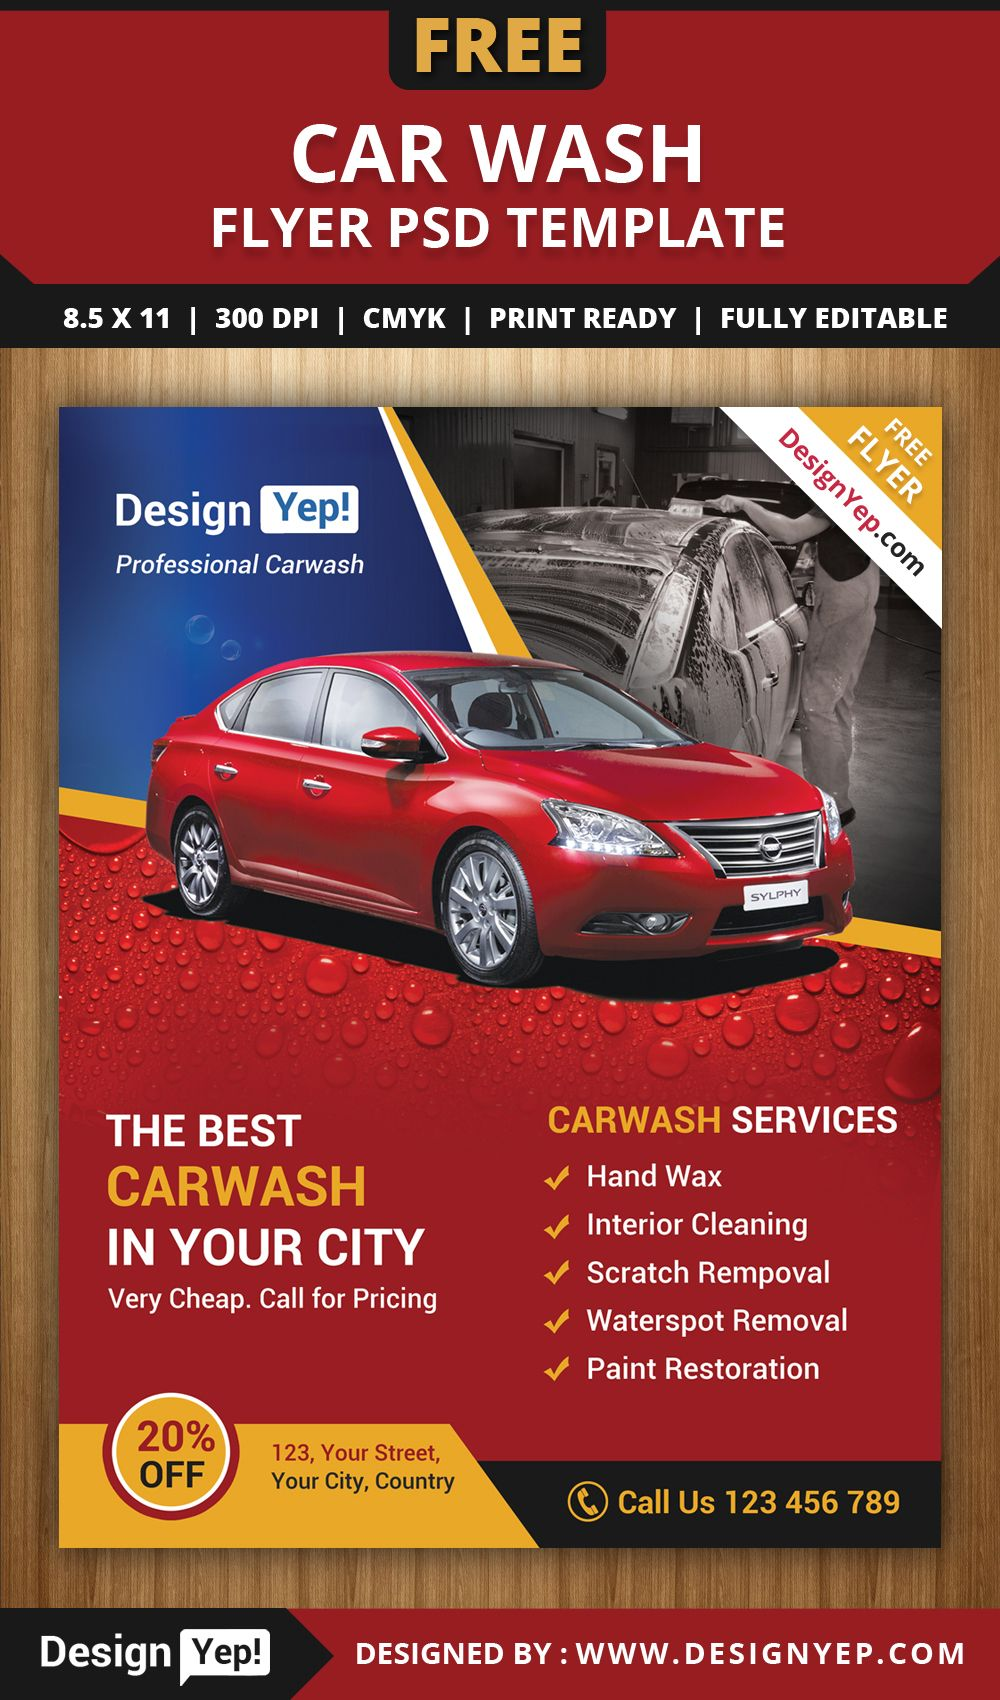 Free Car Wash Flyer PSD Template 3232 Designyep  Car Flyer Template